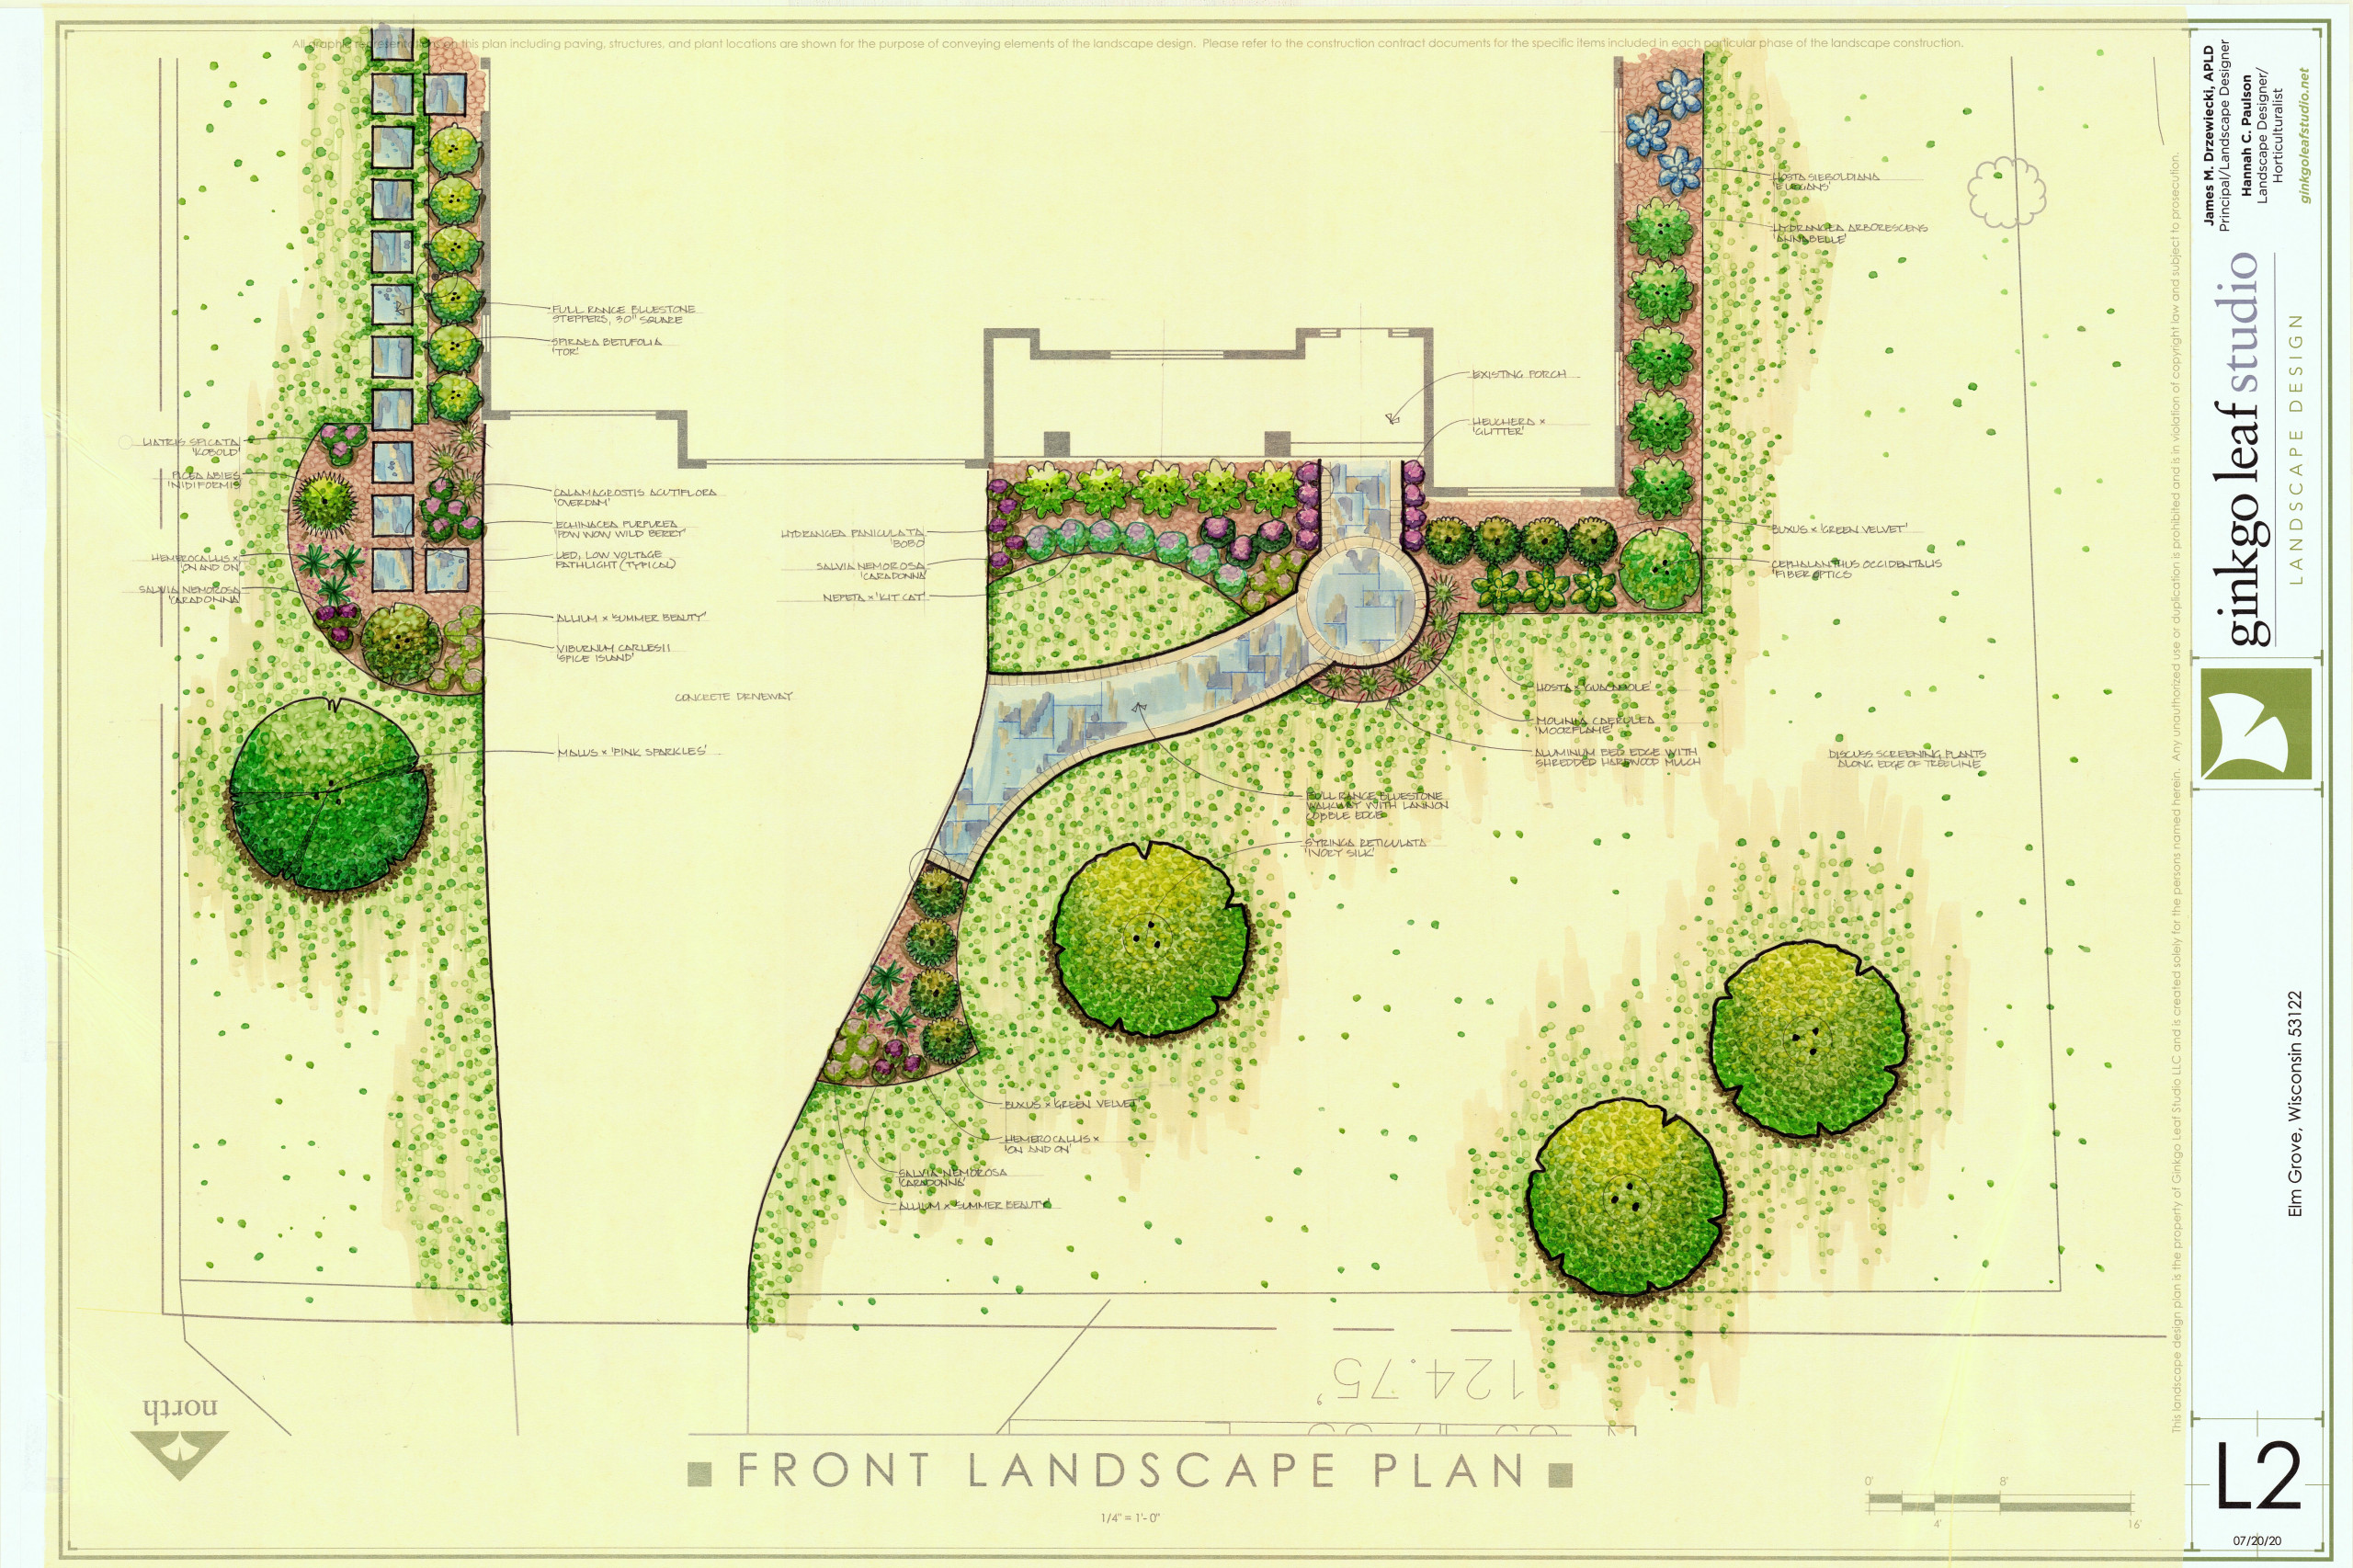 Traditional New Home Landscape - Elm Grove